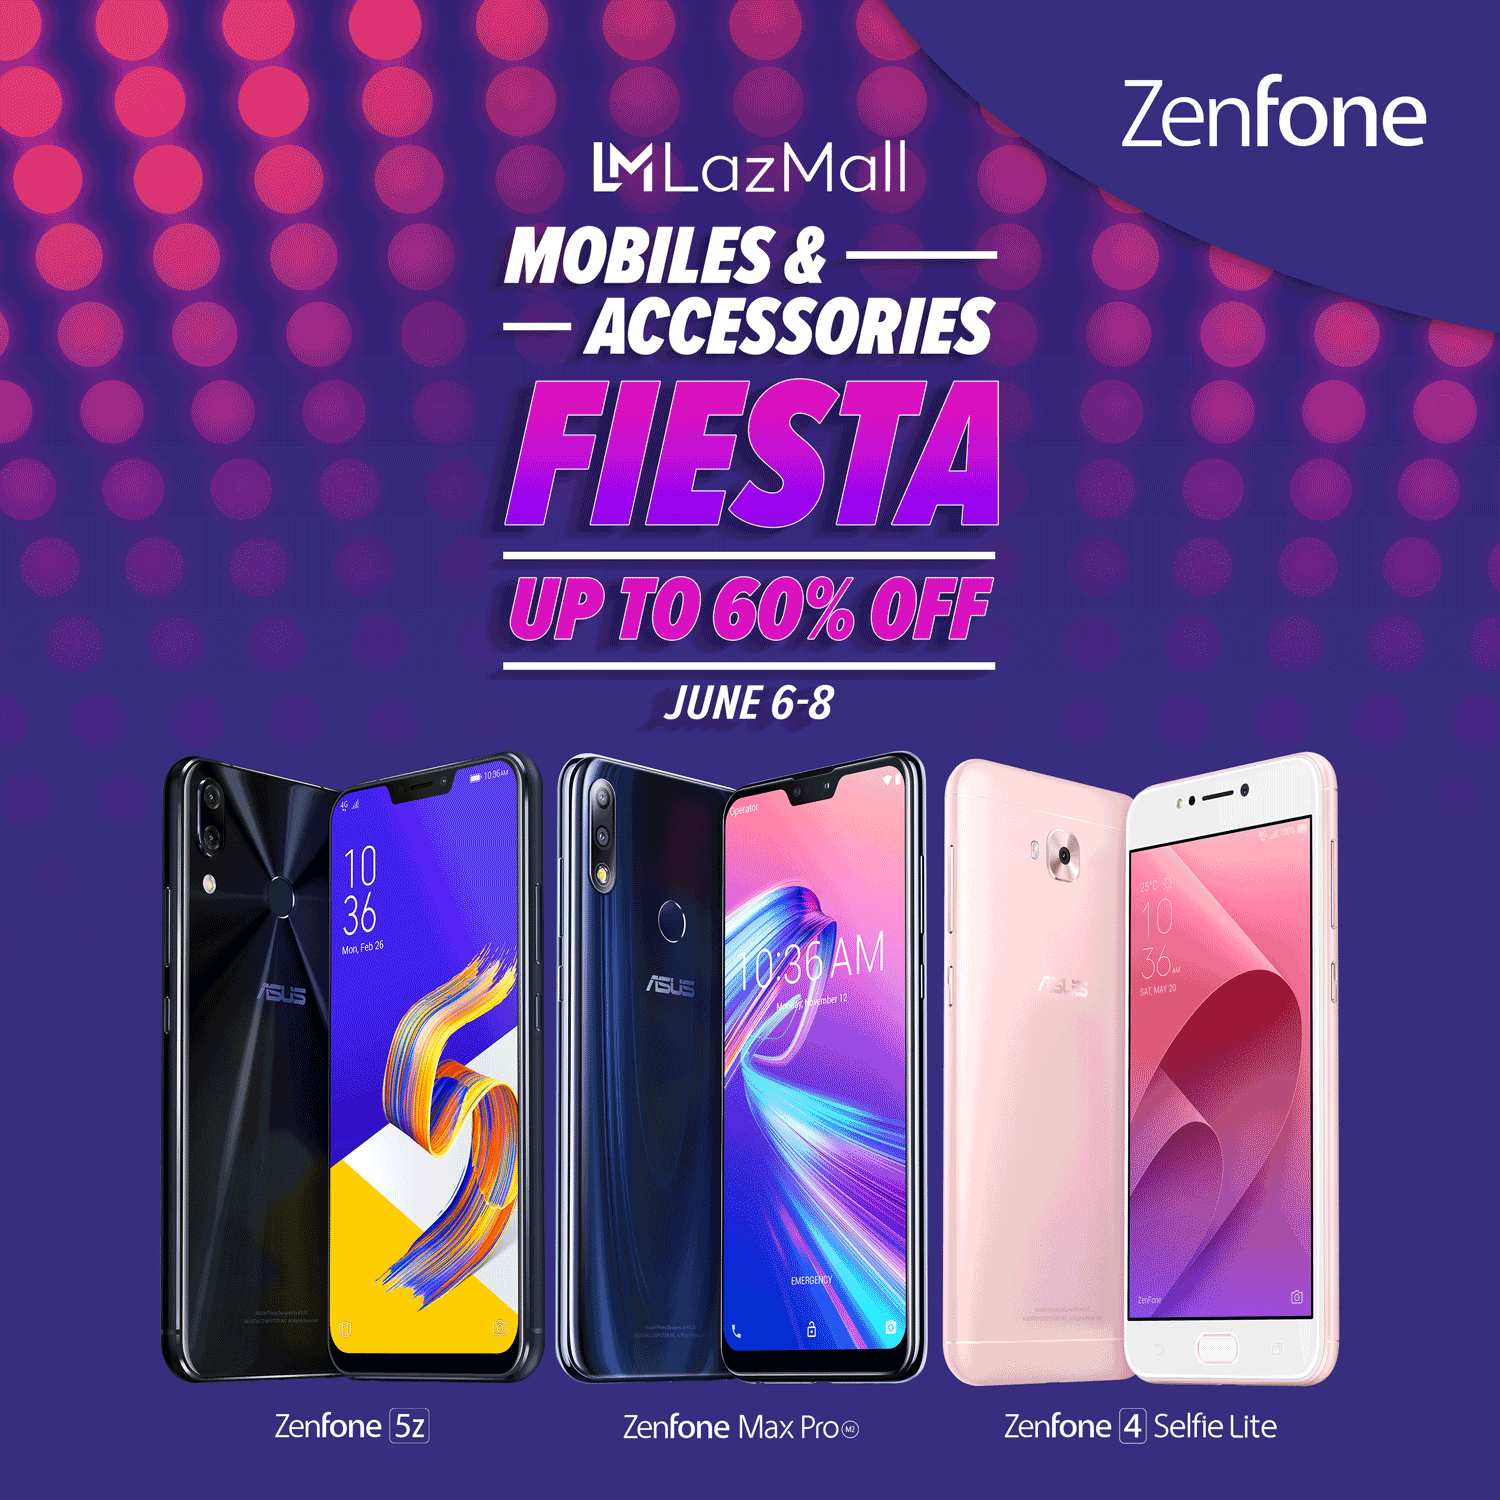 asus zenfone lazada, Get Incredibly Awesome Deals on Select ZenFones and ZenPower Products in Lazada!, Gadget Pilipinas